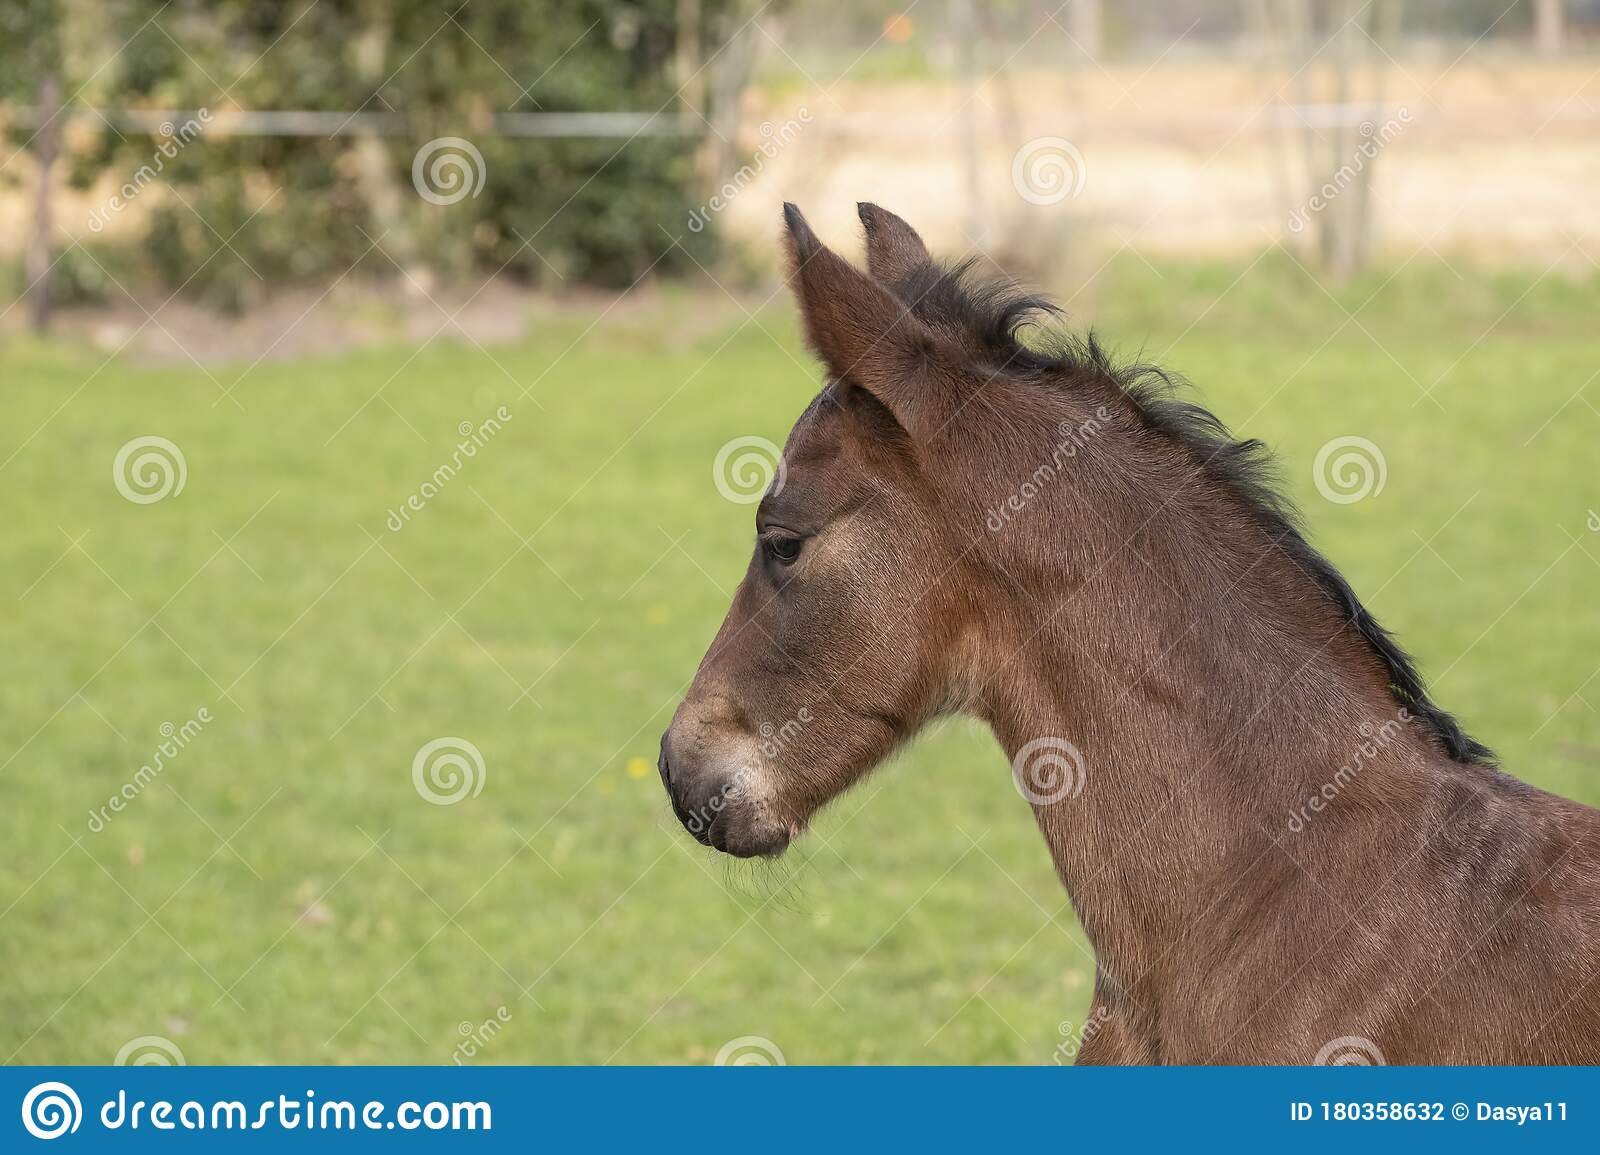 A Close Up Of A Baby Horse On Grass Background Seen From The Side Stock Photo Image Of Born Green 180358632